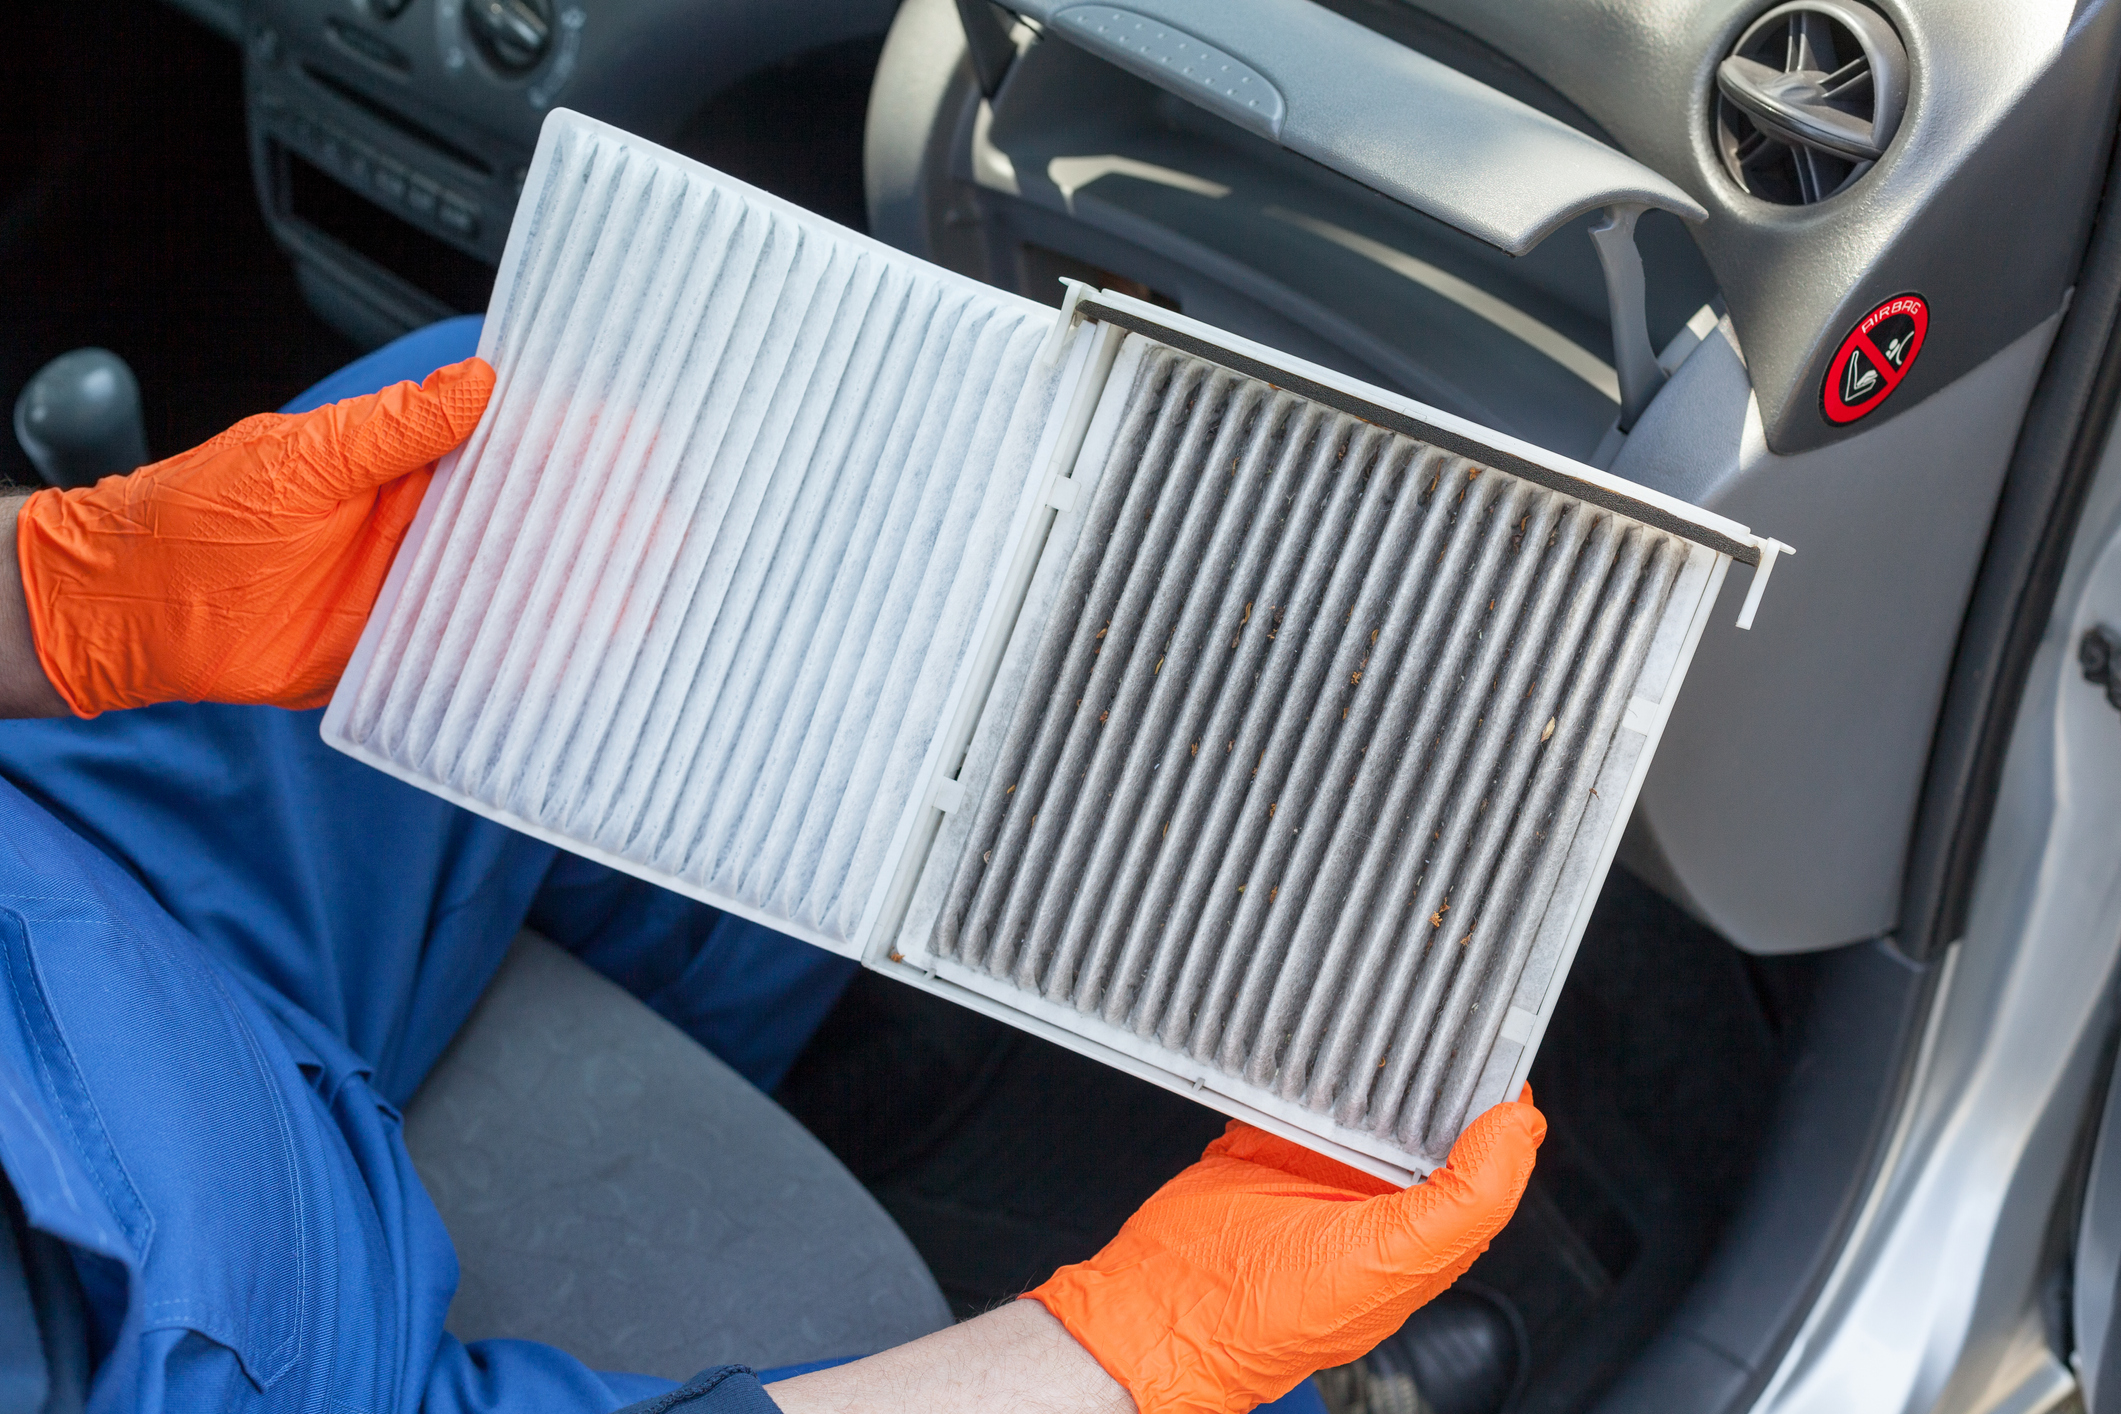 Cabin Air Filter Replacement Service in Chicago, IL